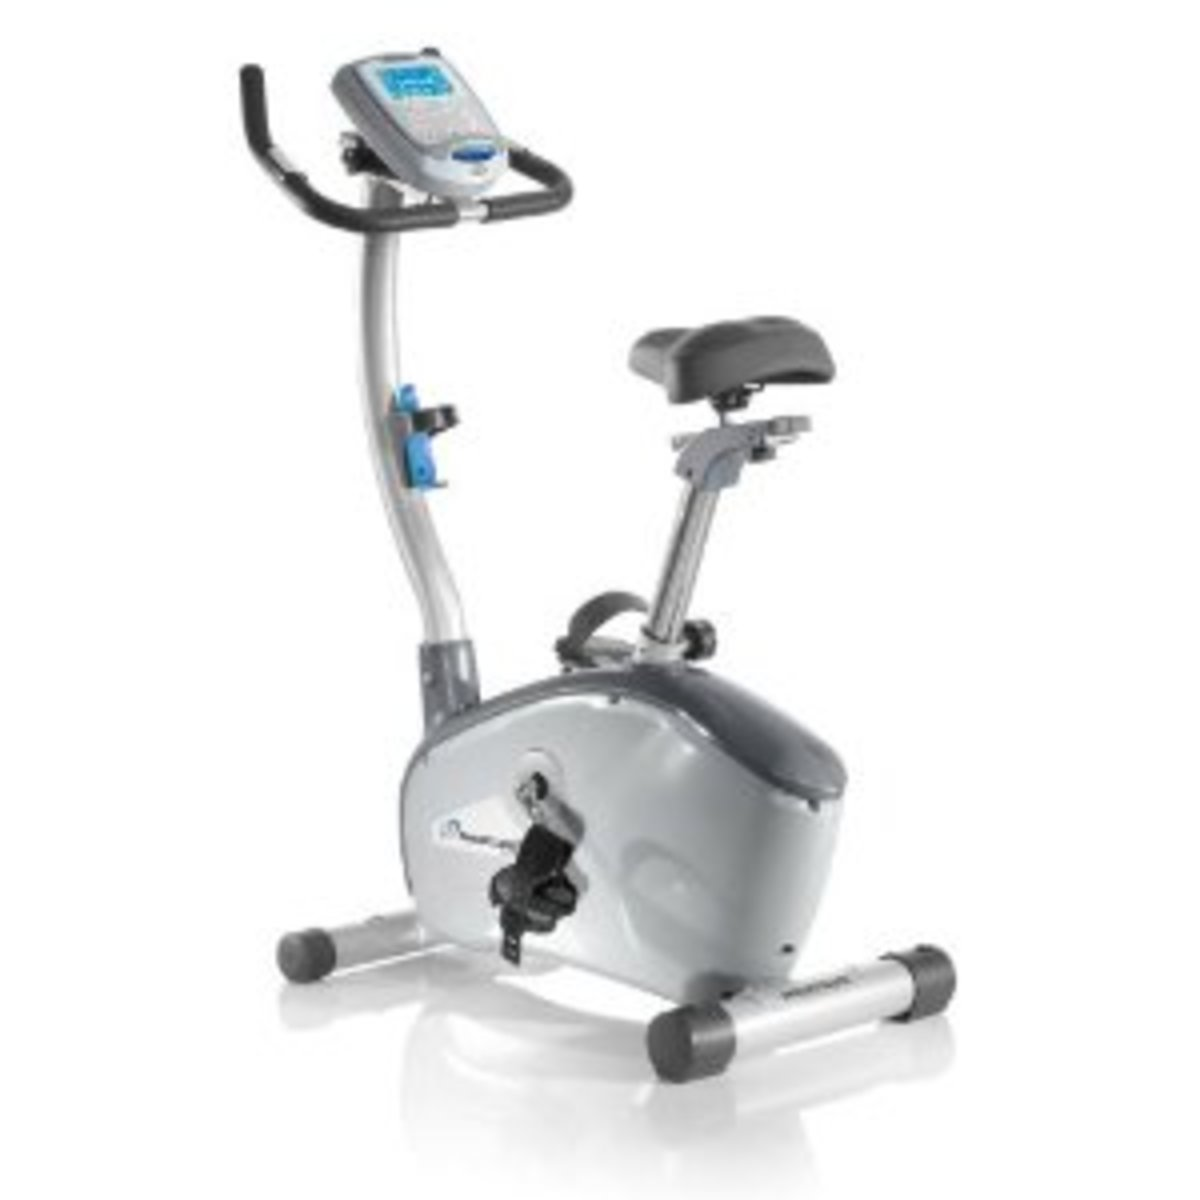 Nautilus U514 Upright Exercise Bike $365.71 w/ manufacturer warranty